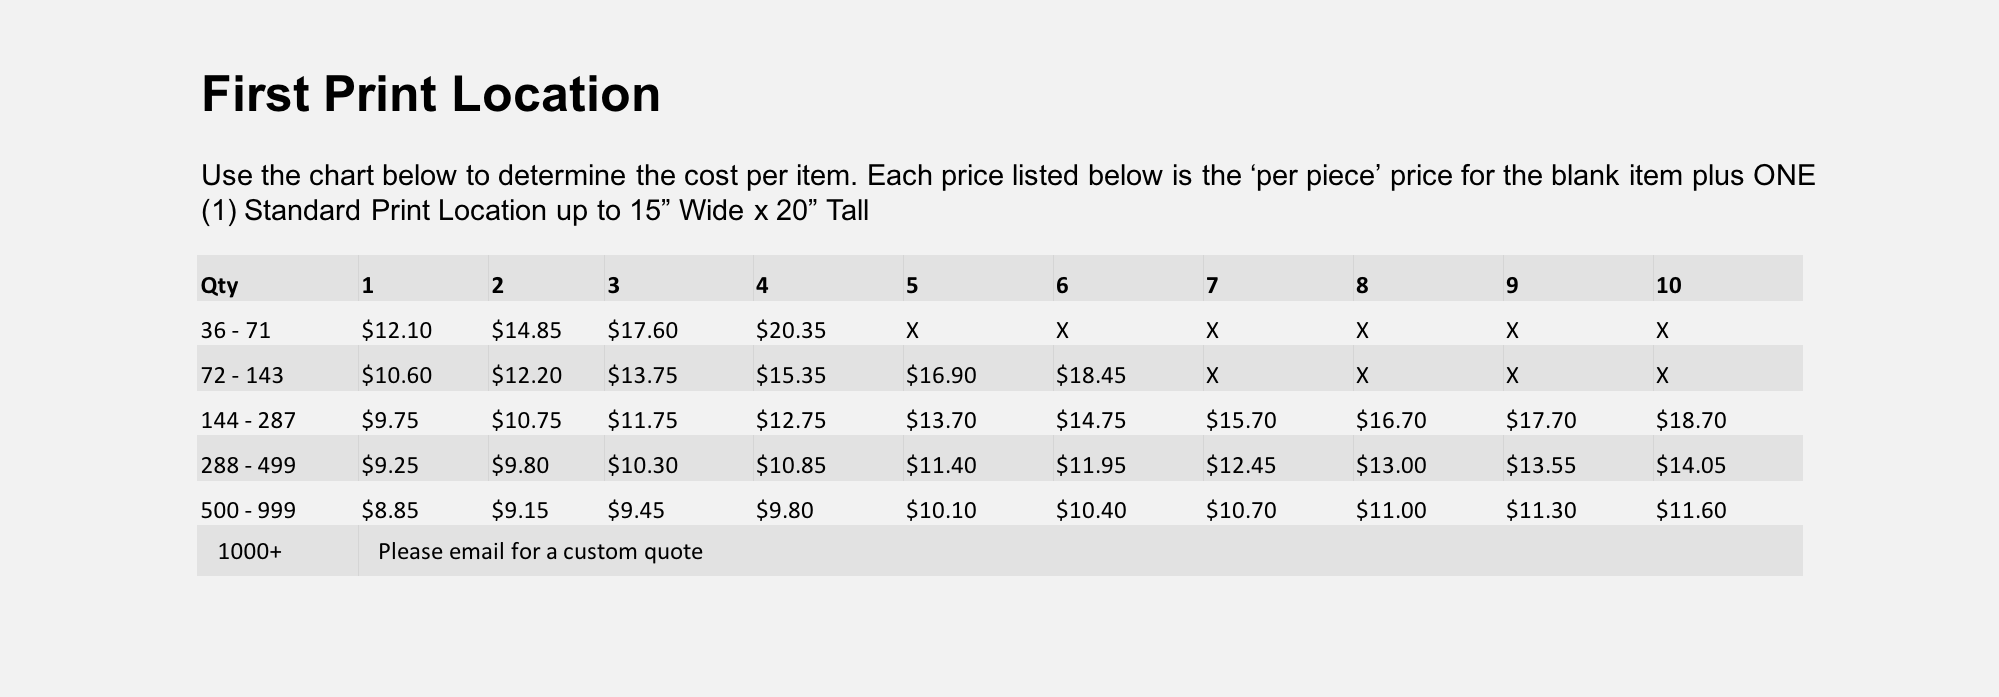 2001_Pricing.png